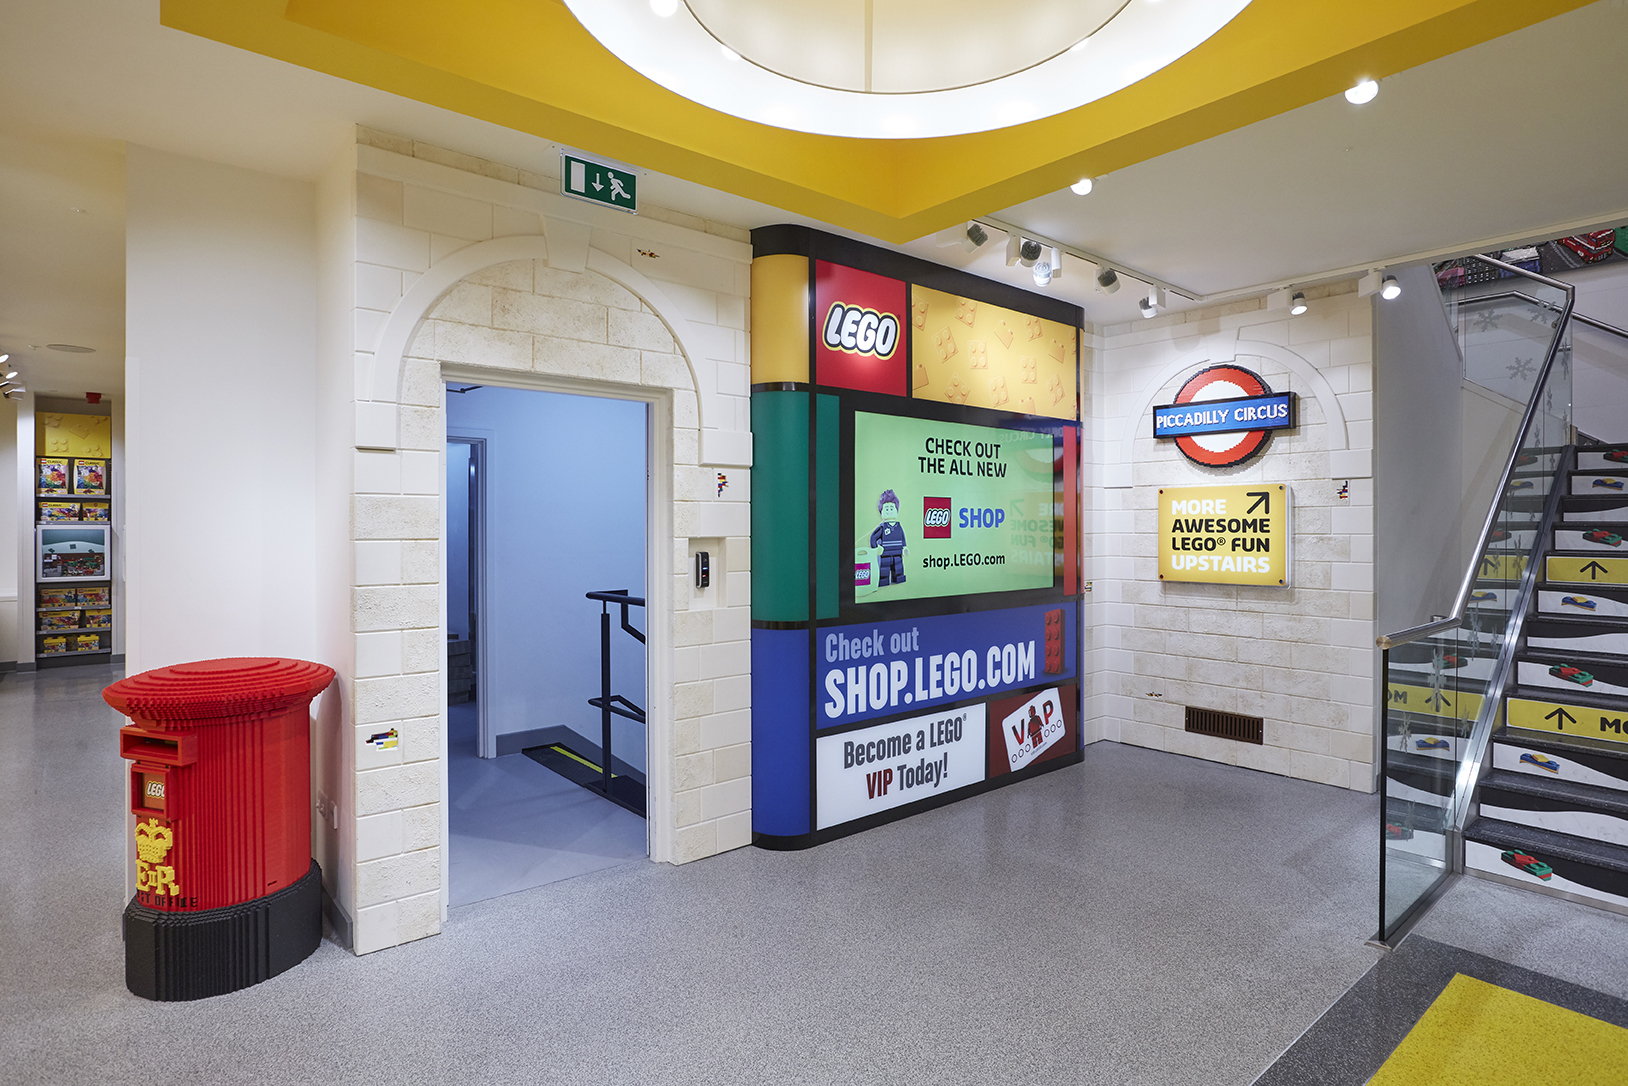 LEGO TV information display corner with false wall cladding and LEGO signage